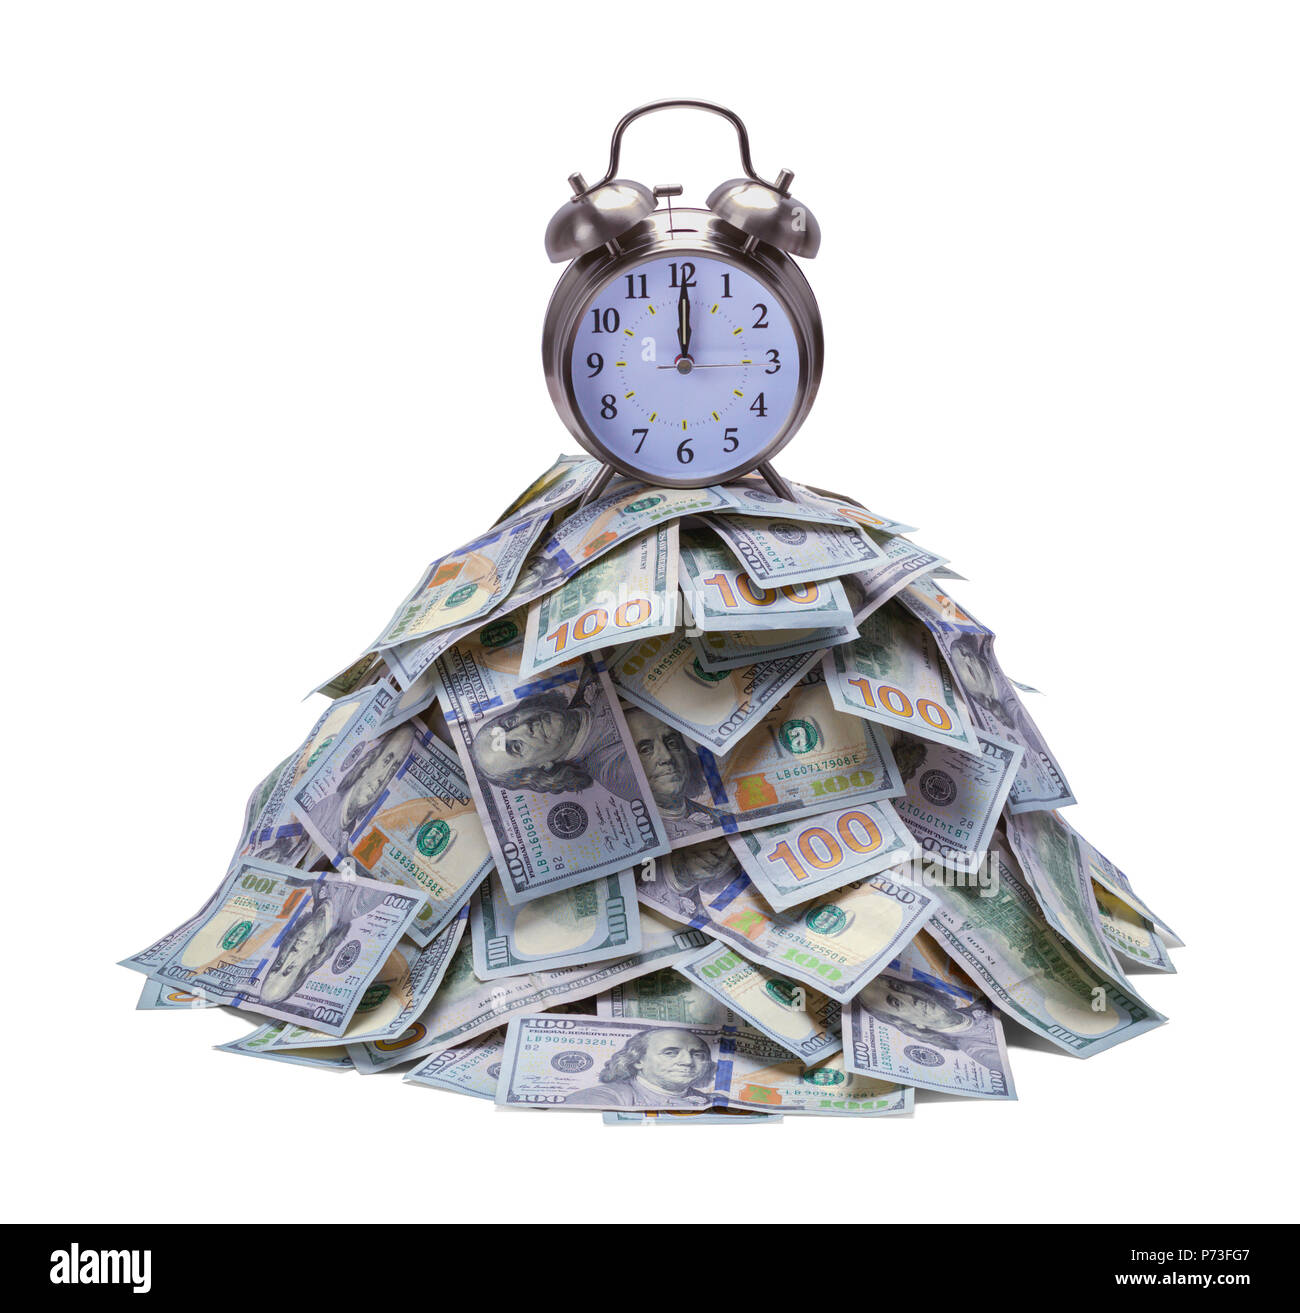 Pile of Money with Alarm Clock on Top Isolated on White Background. - Stock Image